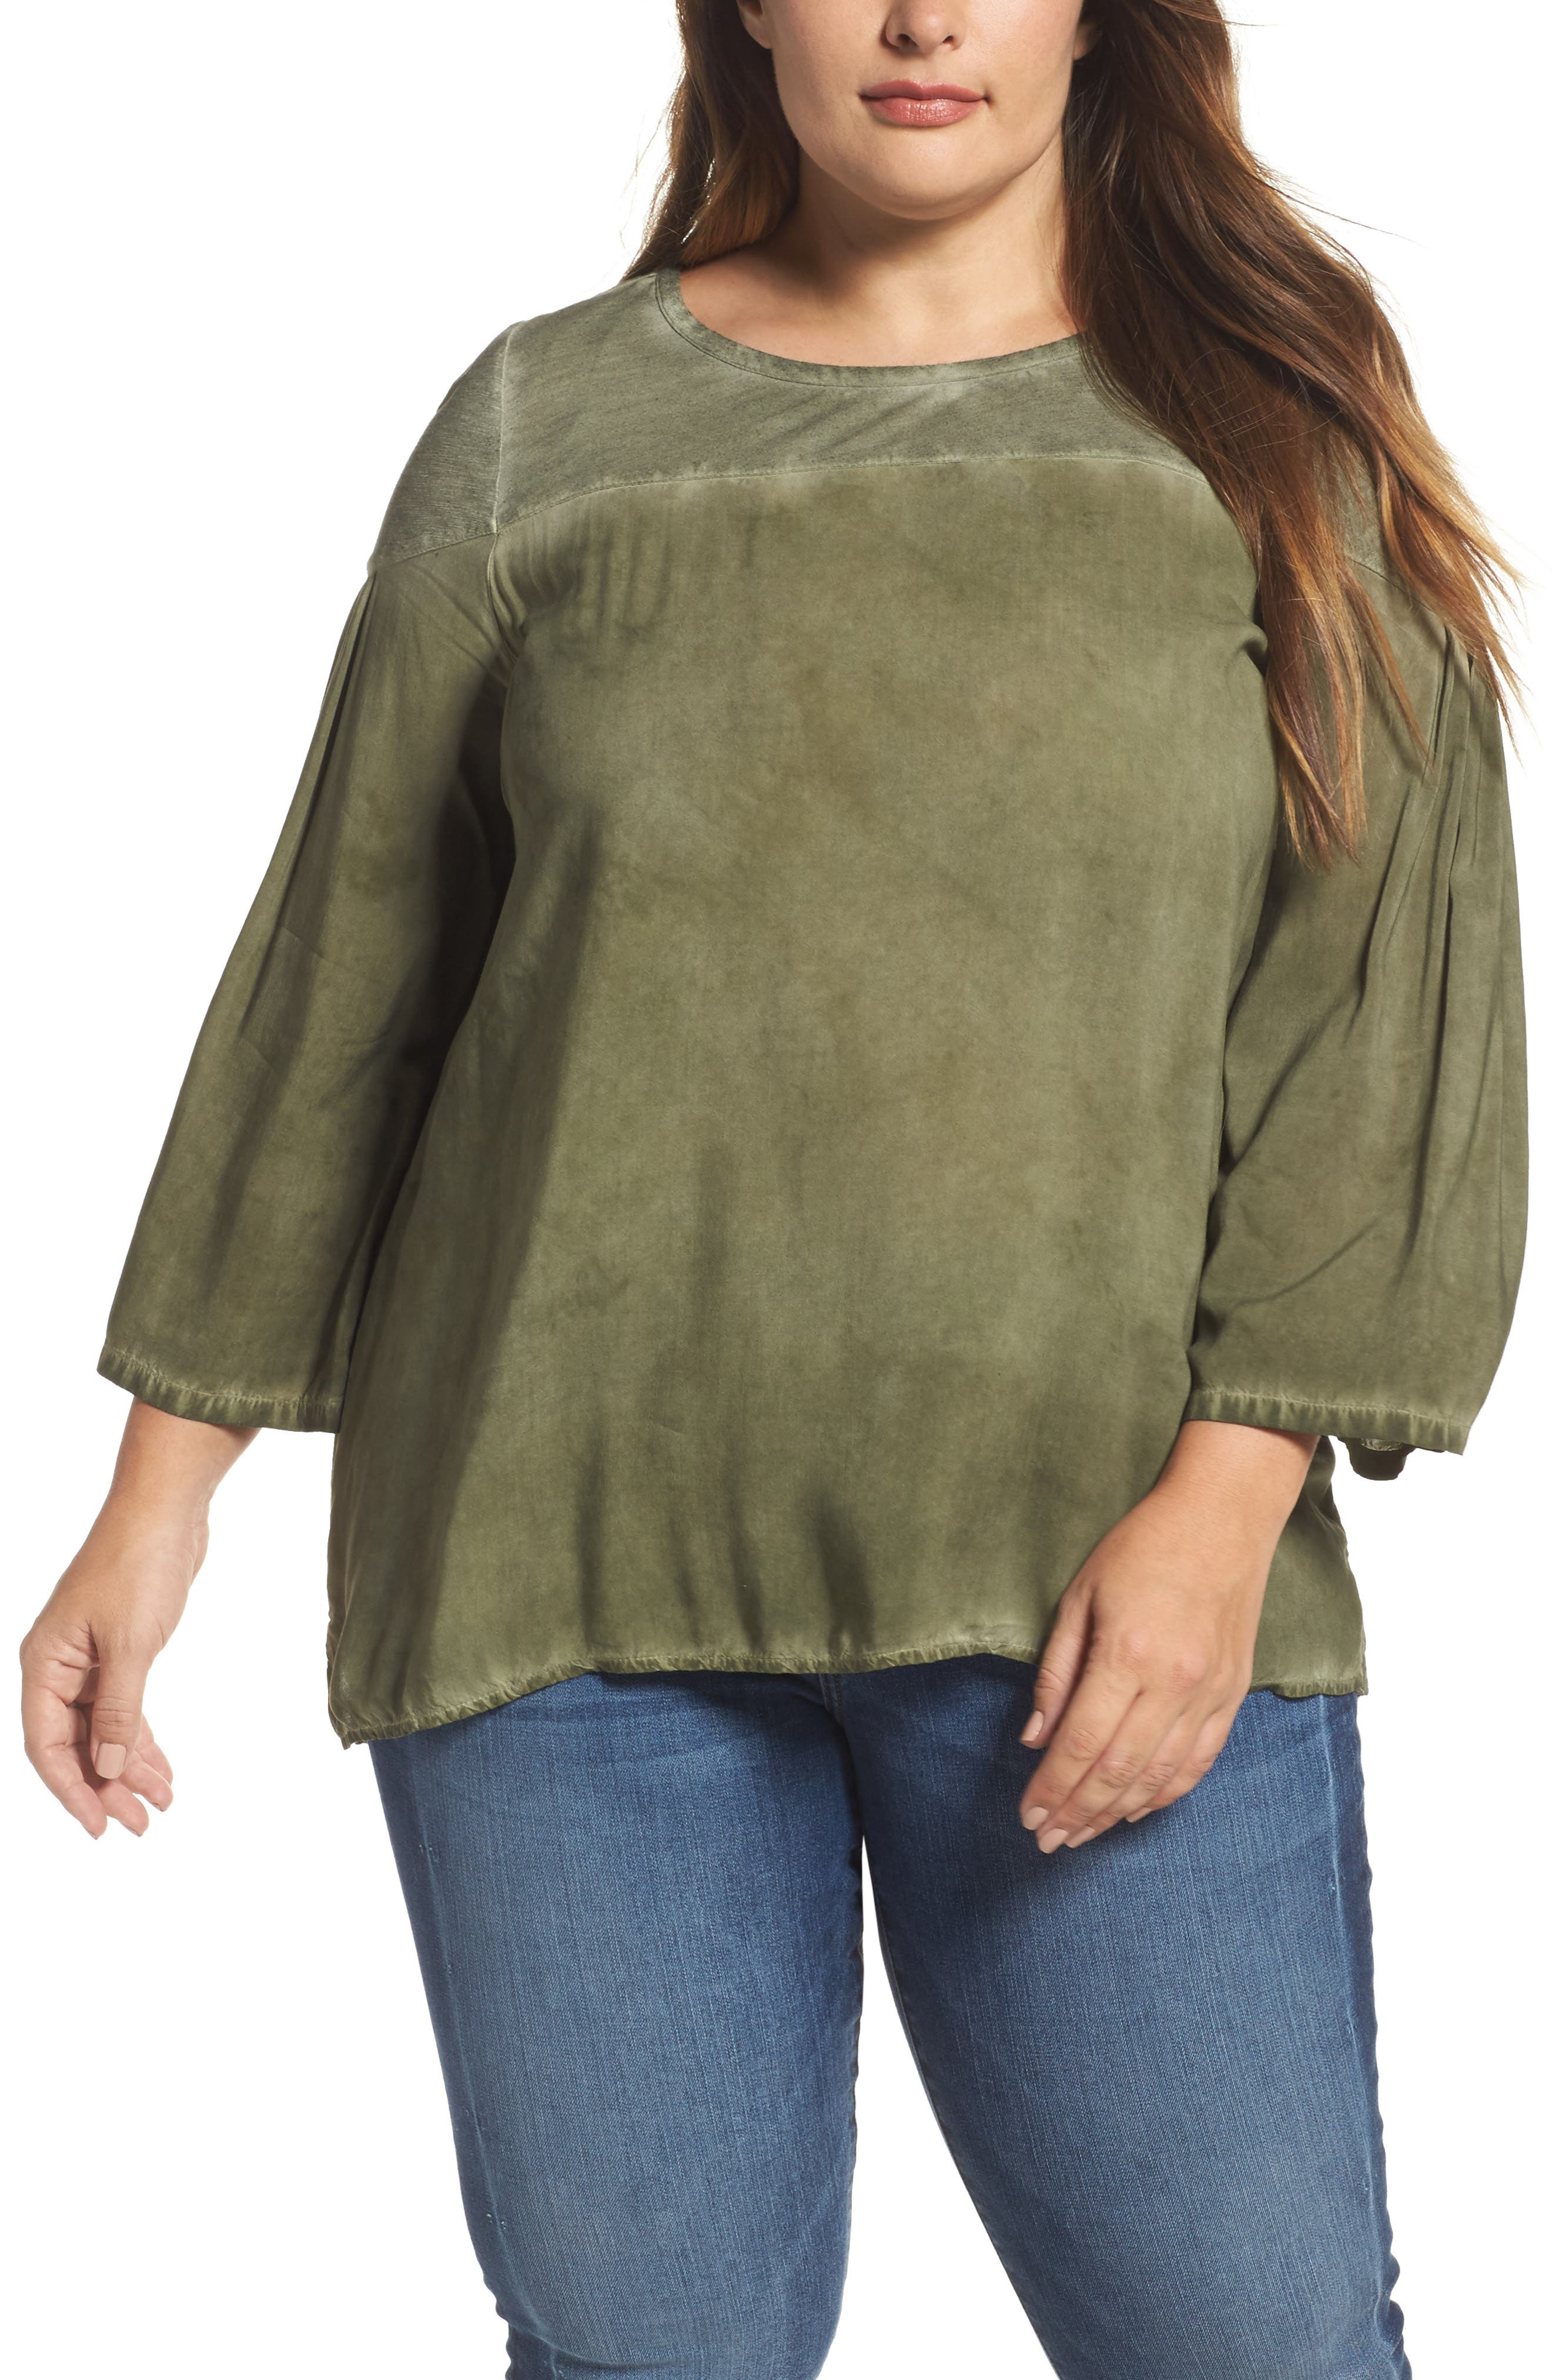 Slubbed Garment Dyed Top,                         Main,                         color, Military Green